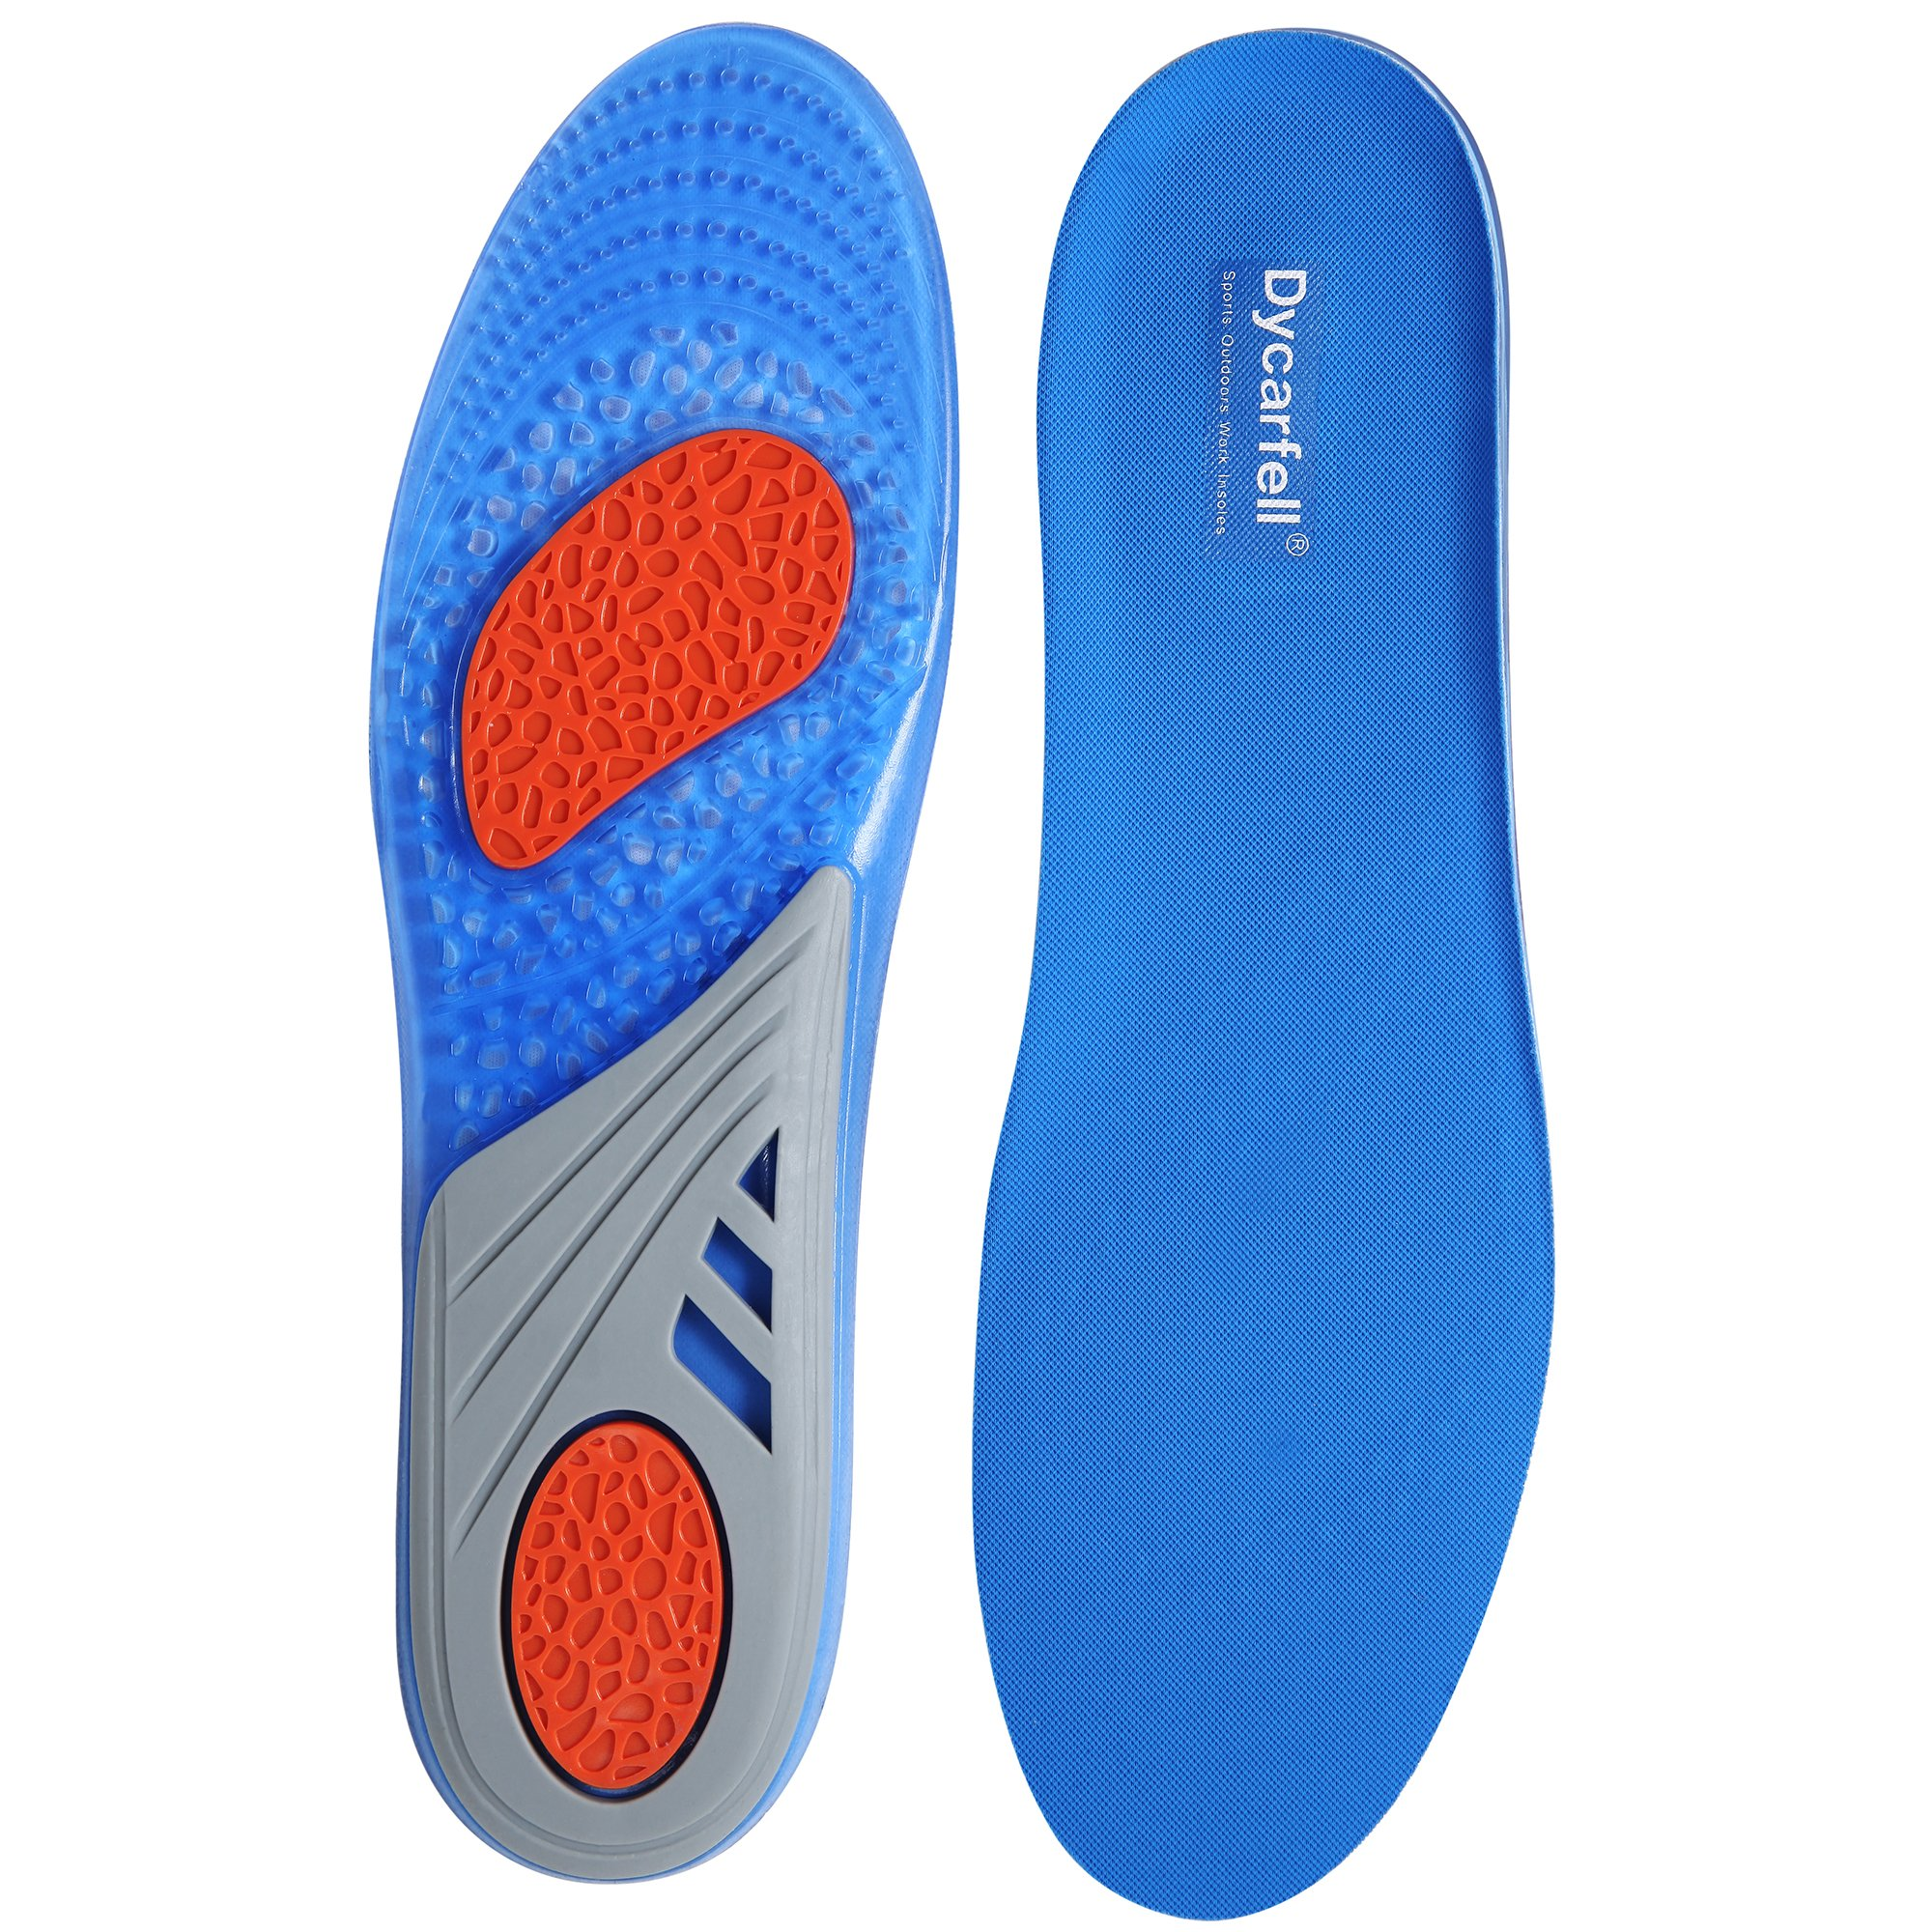 Gel Outdoors Work Shoe Insoles - Providing Excellent Shock Absorption and Cushioning, Best Insoles for Men and Women for Everyday Use, Men's 9-9.5 / Women's 10-10.5